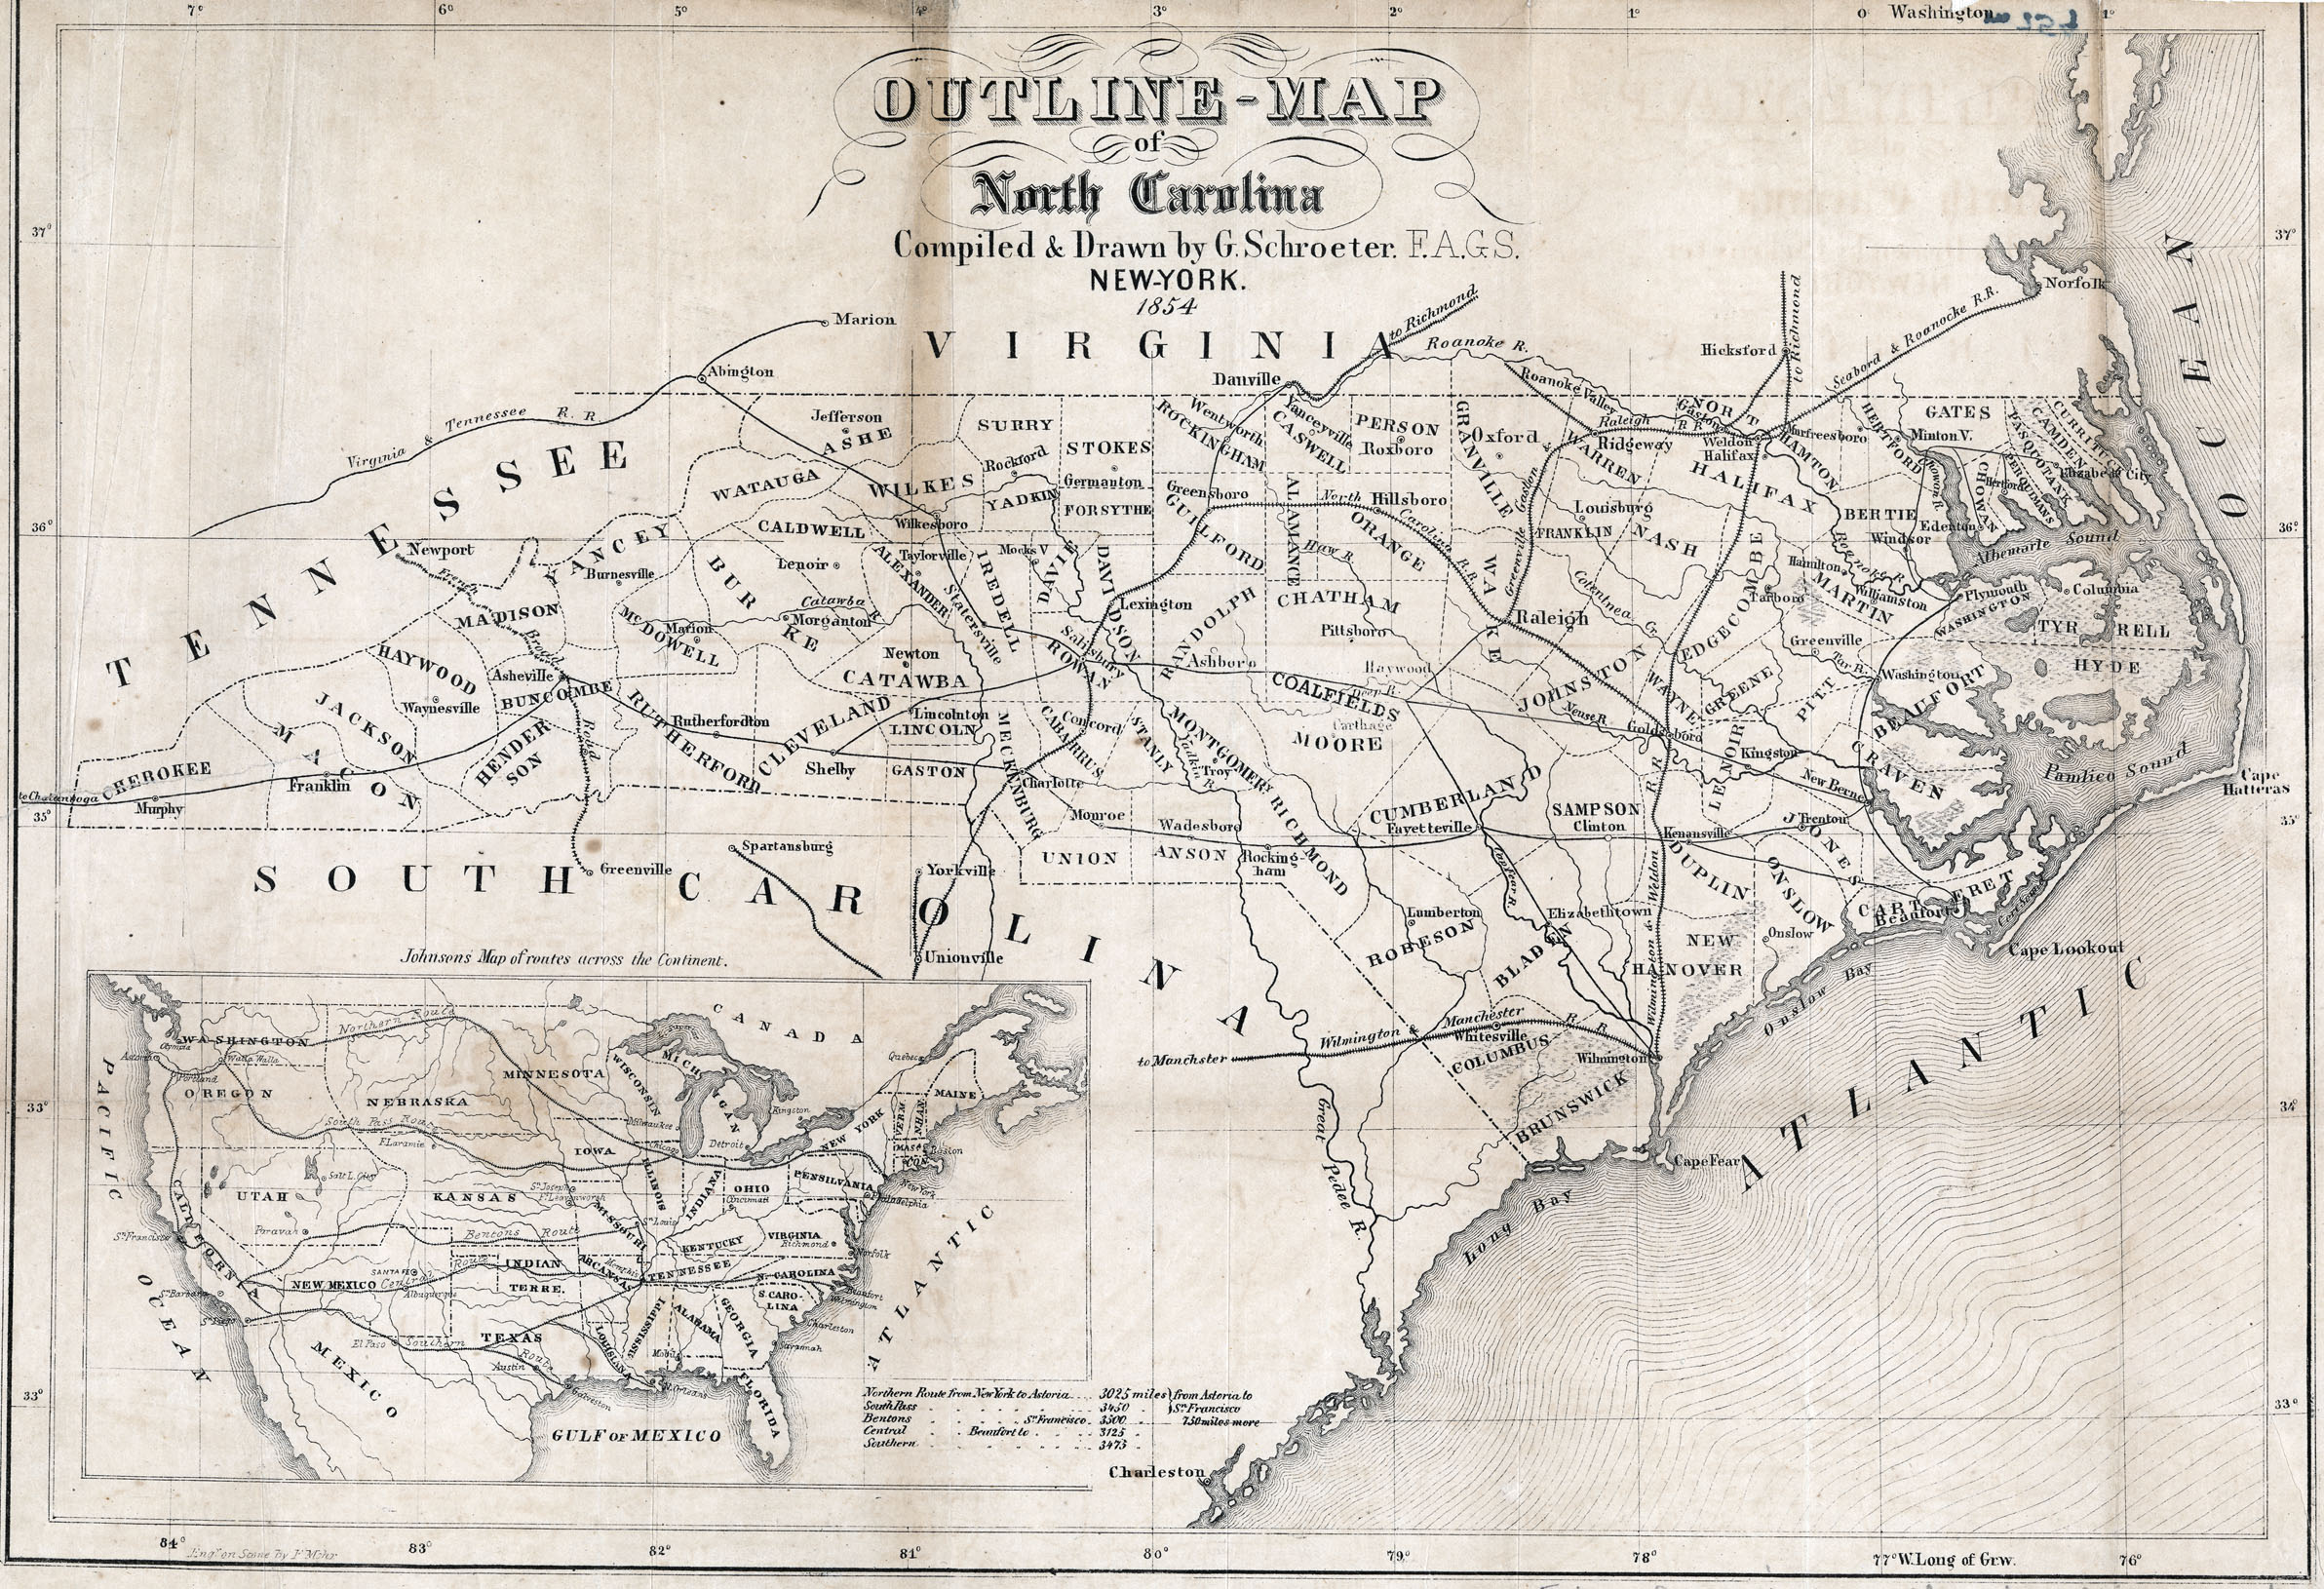 antique map of railroad lines in North Carolina